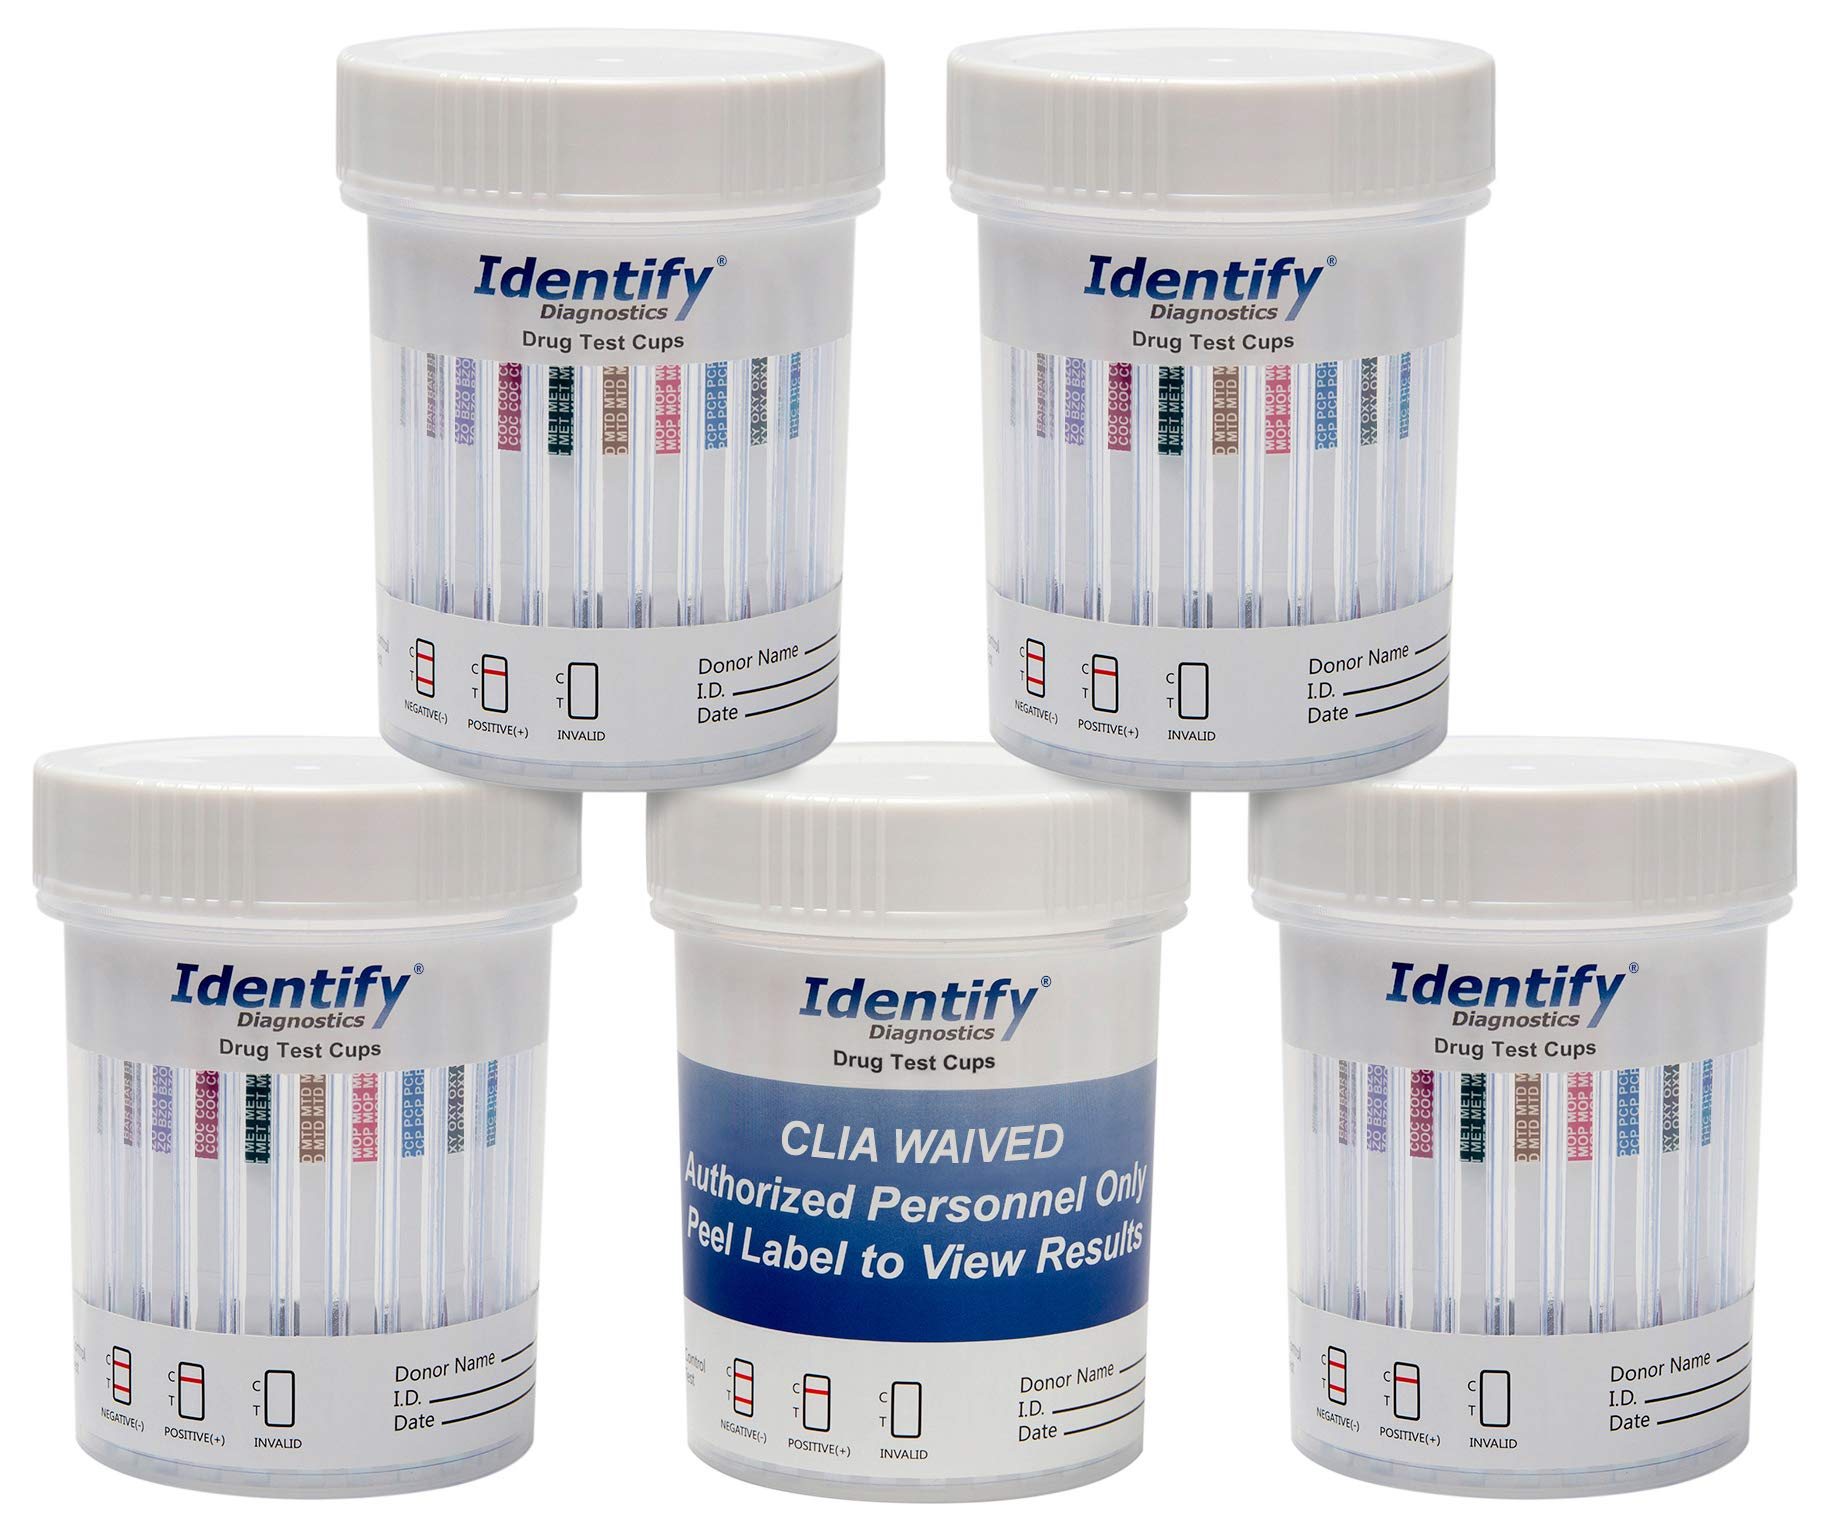 10 Pack Identify Diagnostics 10 Panel Drug Test Cup Testing Instantly for 10 Different Drugs: (THC), (COC), (OXY), (MOP), (AMP), (BAR), (BZO), (MET), (MTD), (PCP) #ID-CP10-AZ by Identify Diagnostics (Image #1)